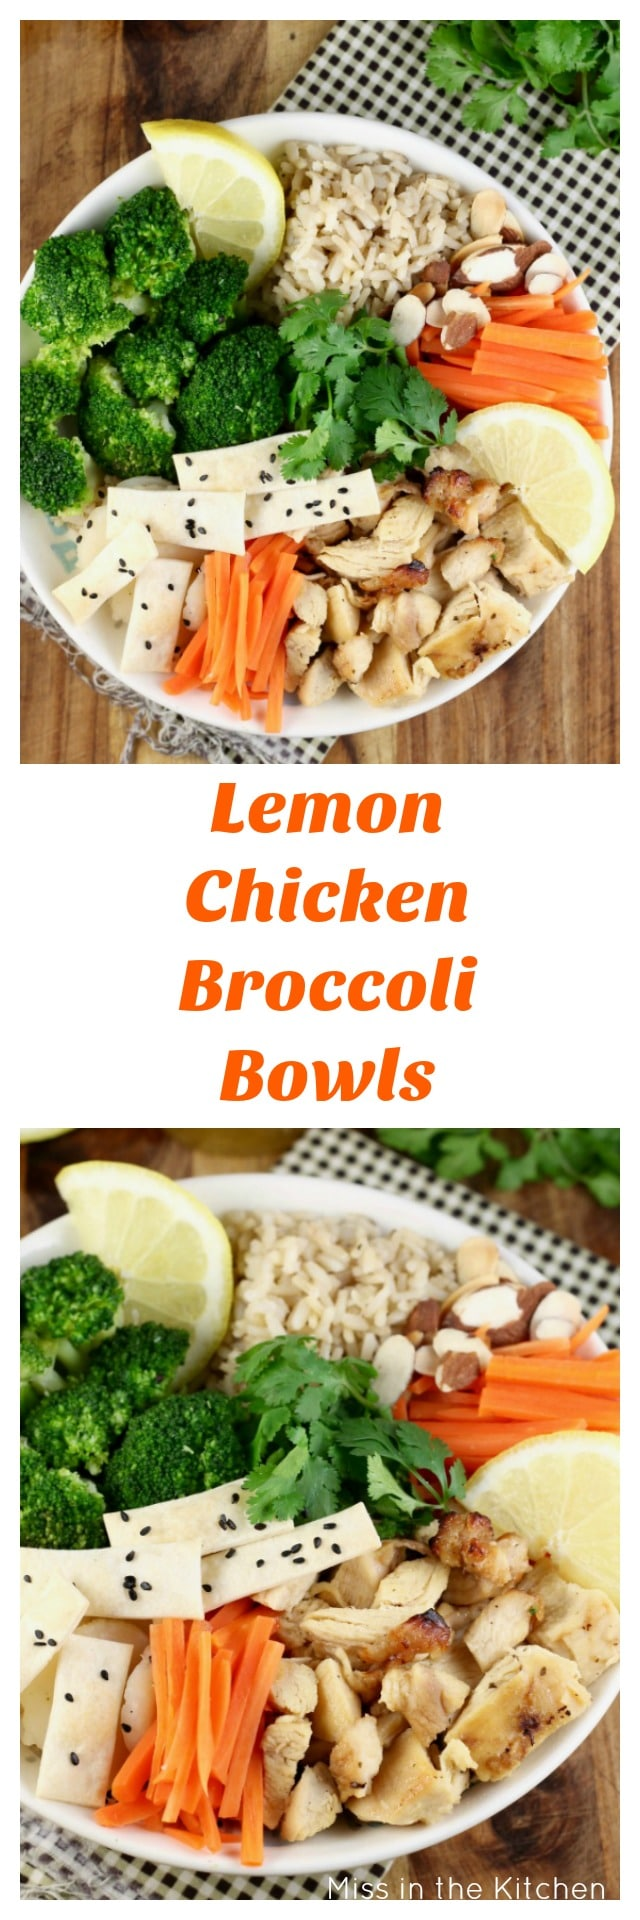 Quick Lemon Chicken Broccoli Bowls for an easy weeknight dinner that the whole family will enjoy! Sponsored by Tyson & Wish-Bone from MissintheKitchen.com